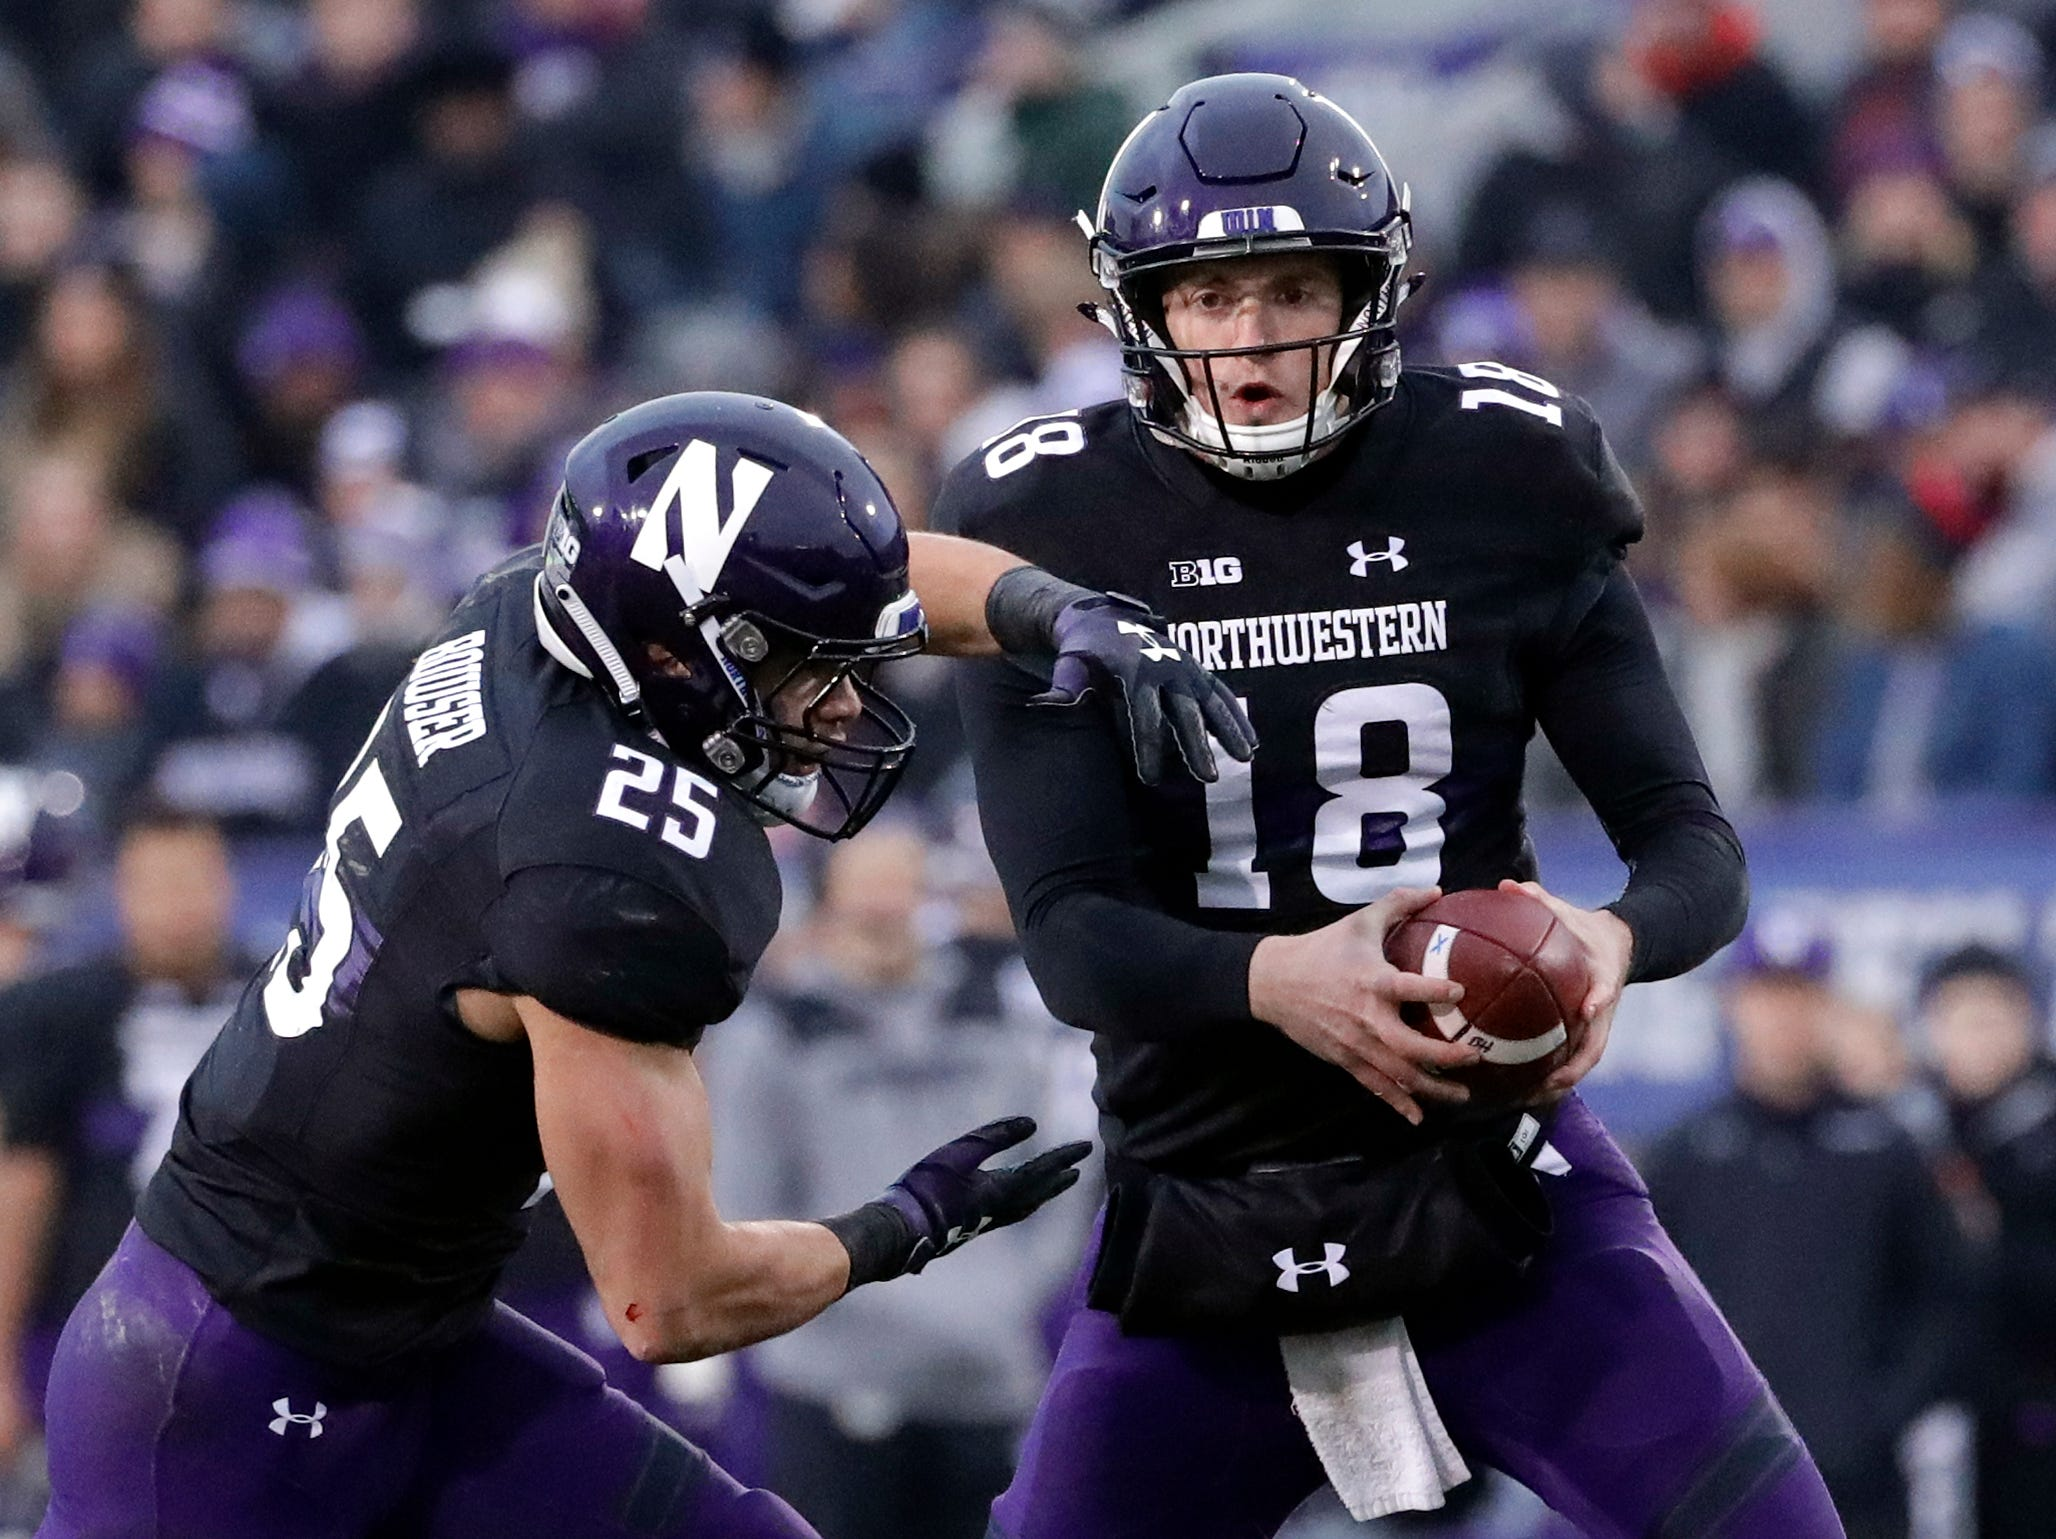 3. Northwestern (8-4, 8-1) – It wasn't exactly pretty, but with the West all wrapped up and the reservations made for Indianapolis, the Wildcats were happy to get out of Illinois with a victory and start preparing for next week's matchup with Ohio State. The Cats will be a decided underdog, but for a team that began the season 1-3, don't count on them expecting to just be happy they've gotten this far. Last week: 3.